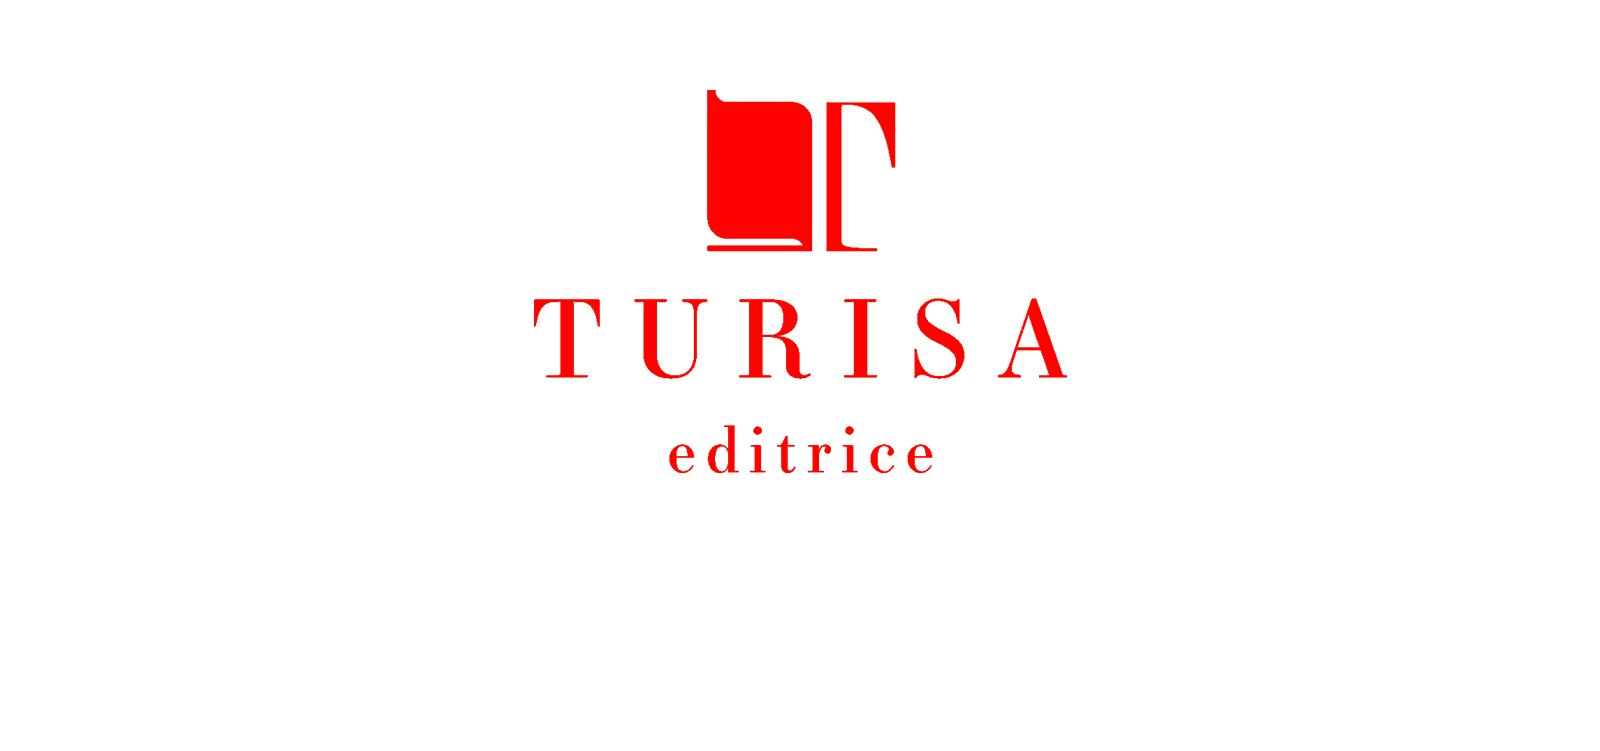 www.turisaeditrice.it